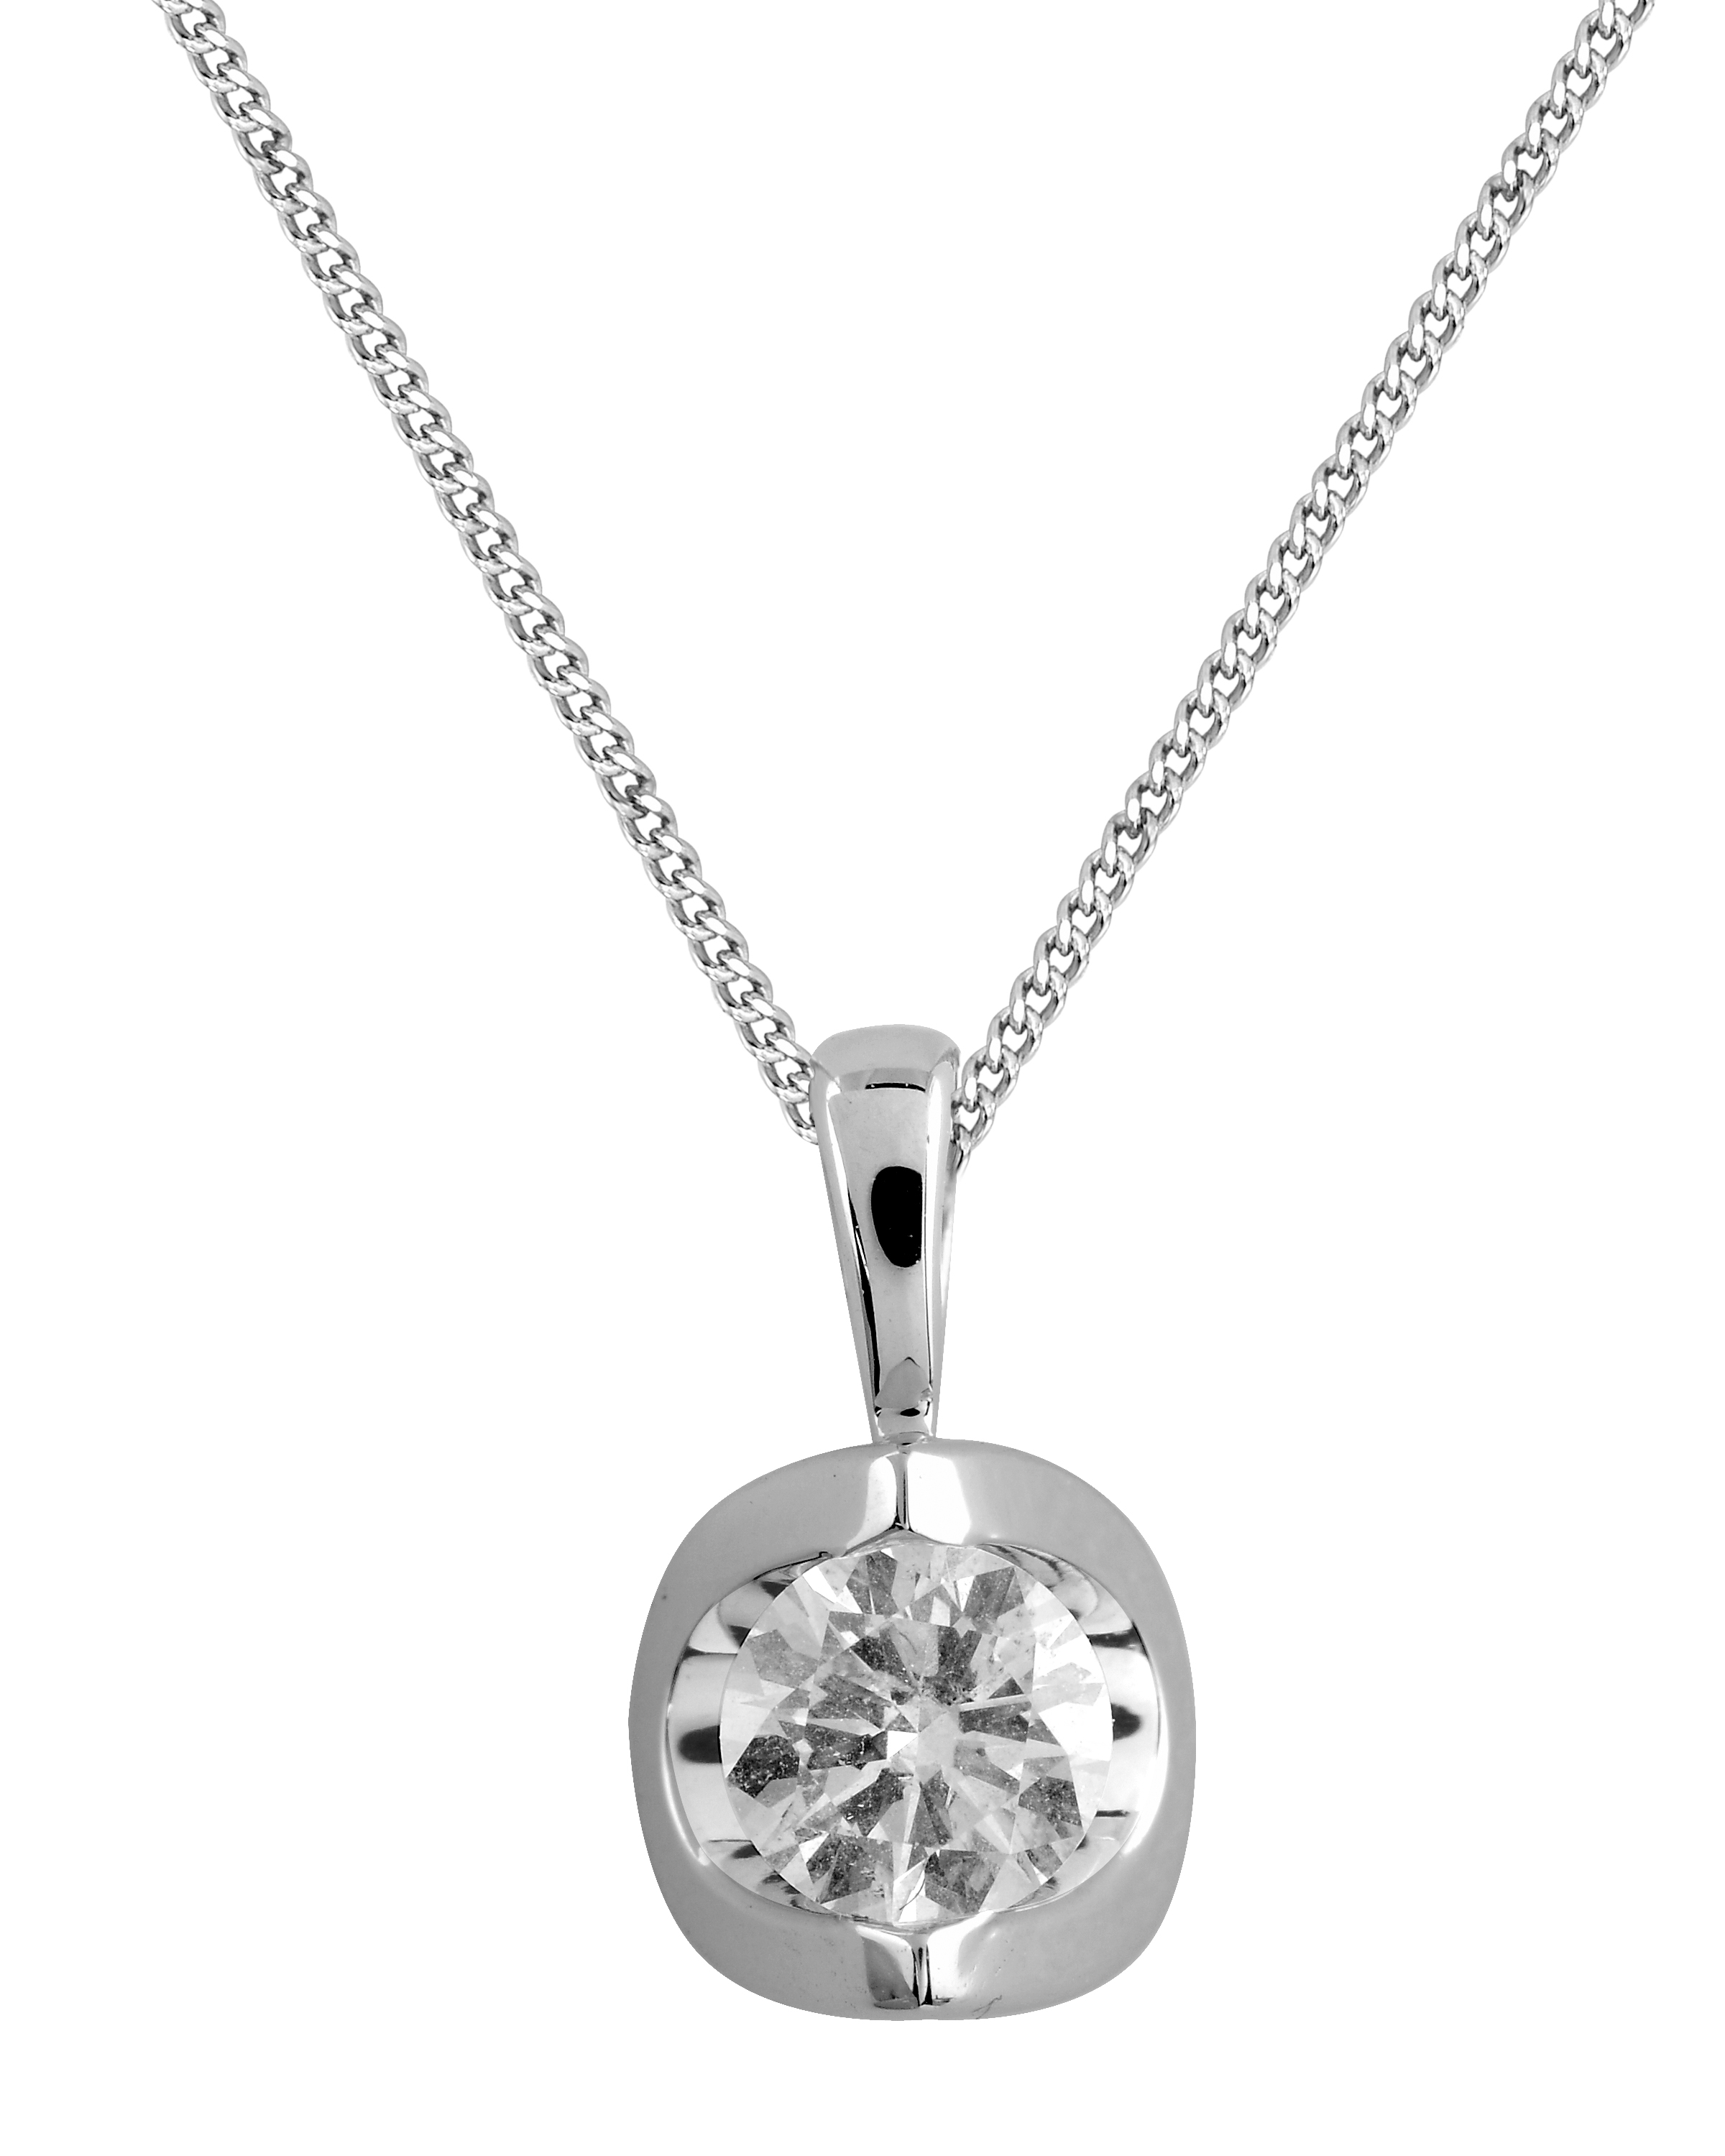 Diamond pendant 0.10 Carats T.W. Clarity:I Color:GH - in 14K white gold - chain included